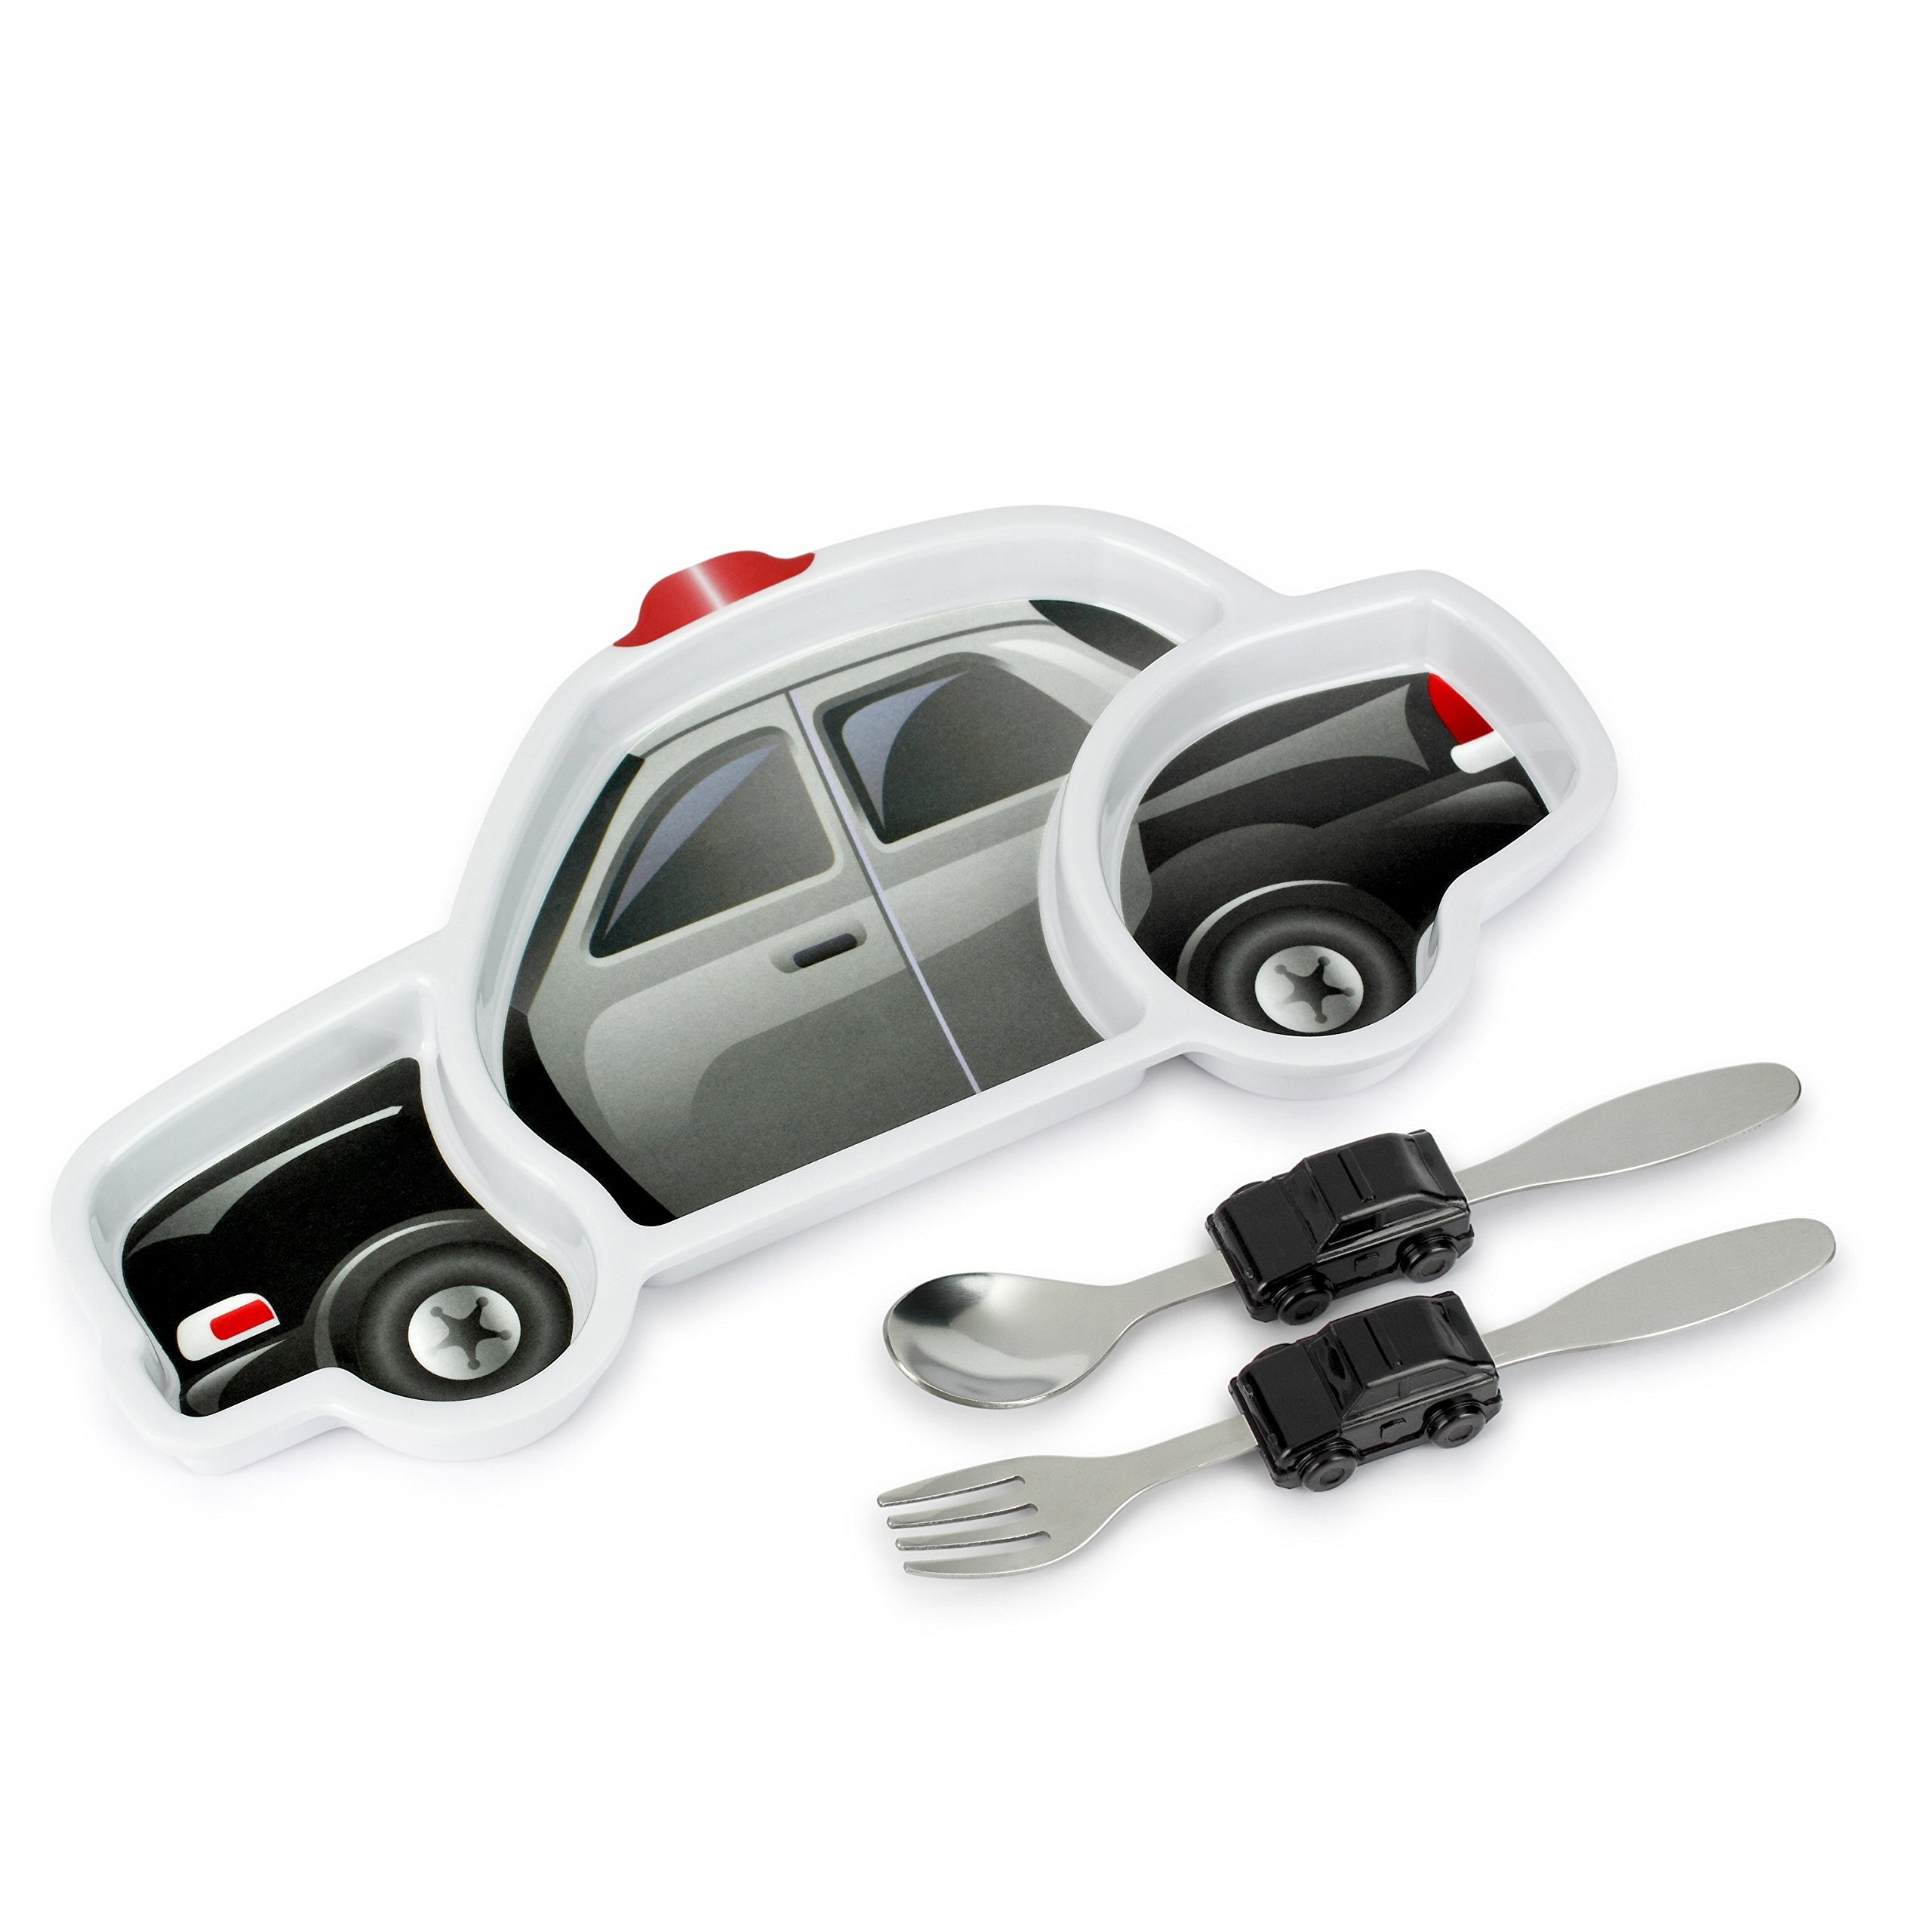 KidsFunwares Me Time Meal Set (Police Car) – 3-Piece Set for Kids and Toddlers – Plate, Fork and Spoon that Children Love - Sparks your Child's Imagination & Teaches Portion Control - Dishwasher Safe